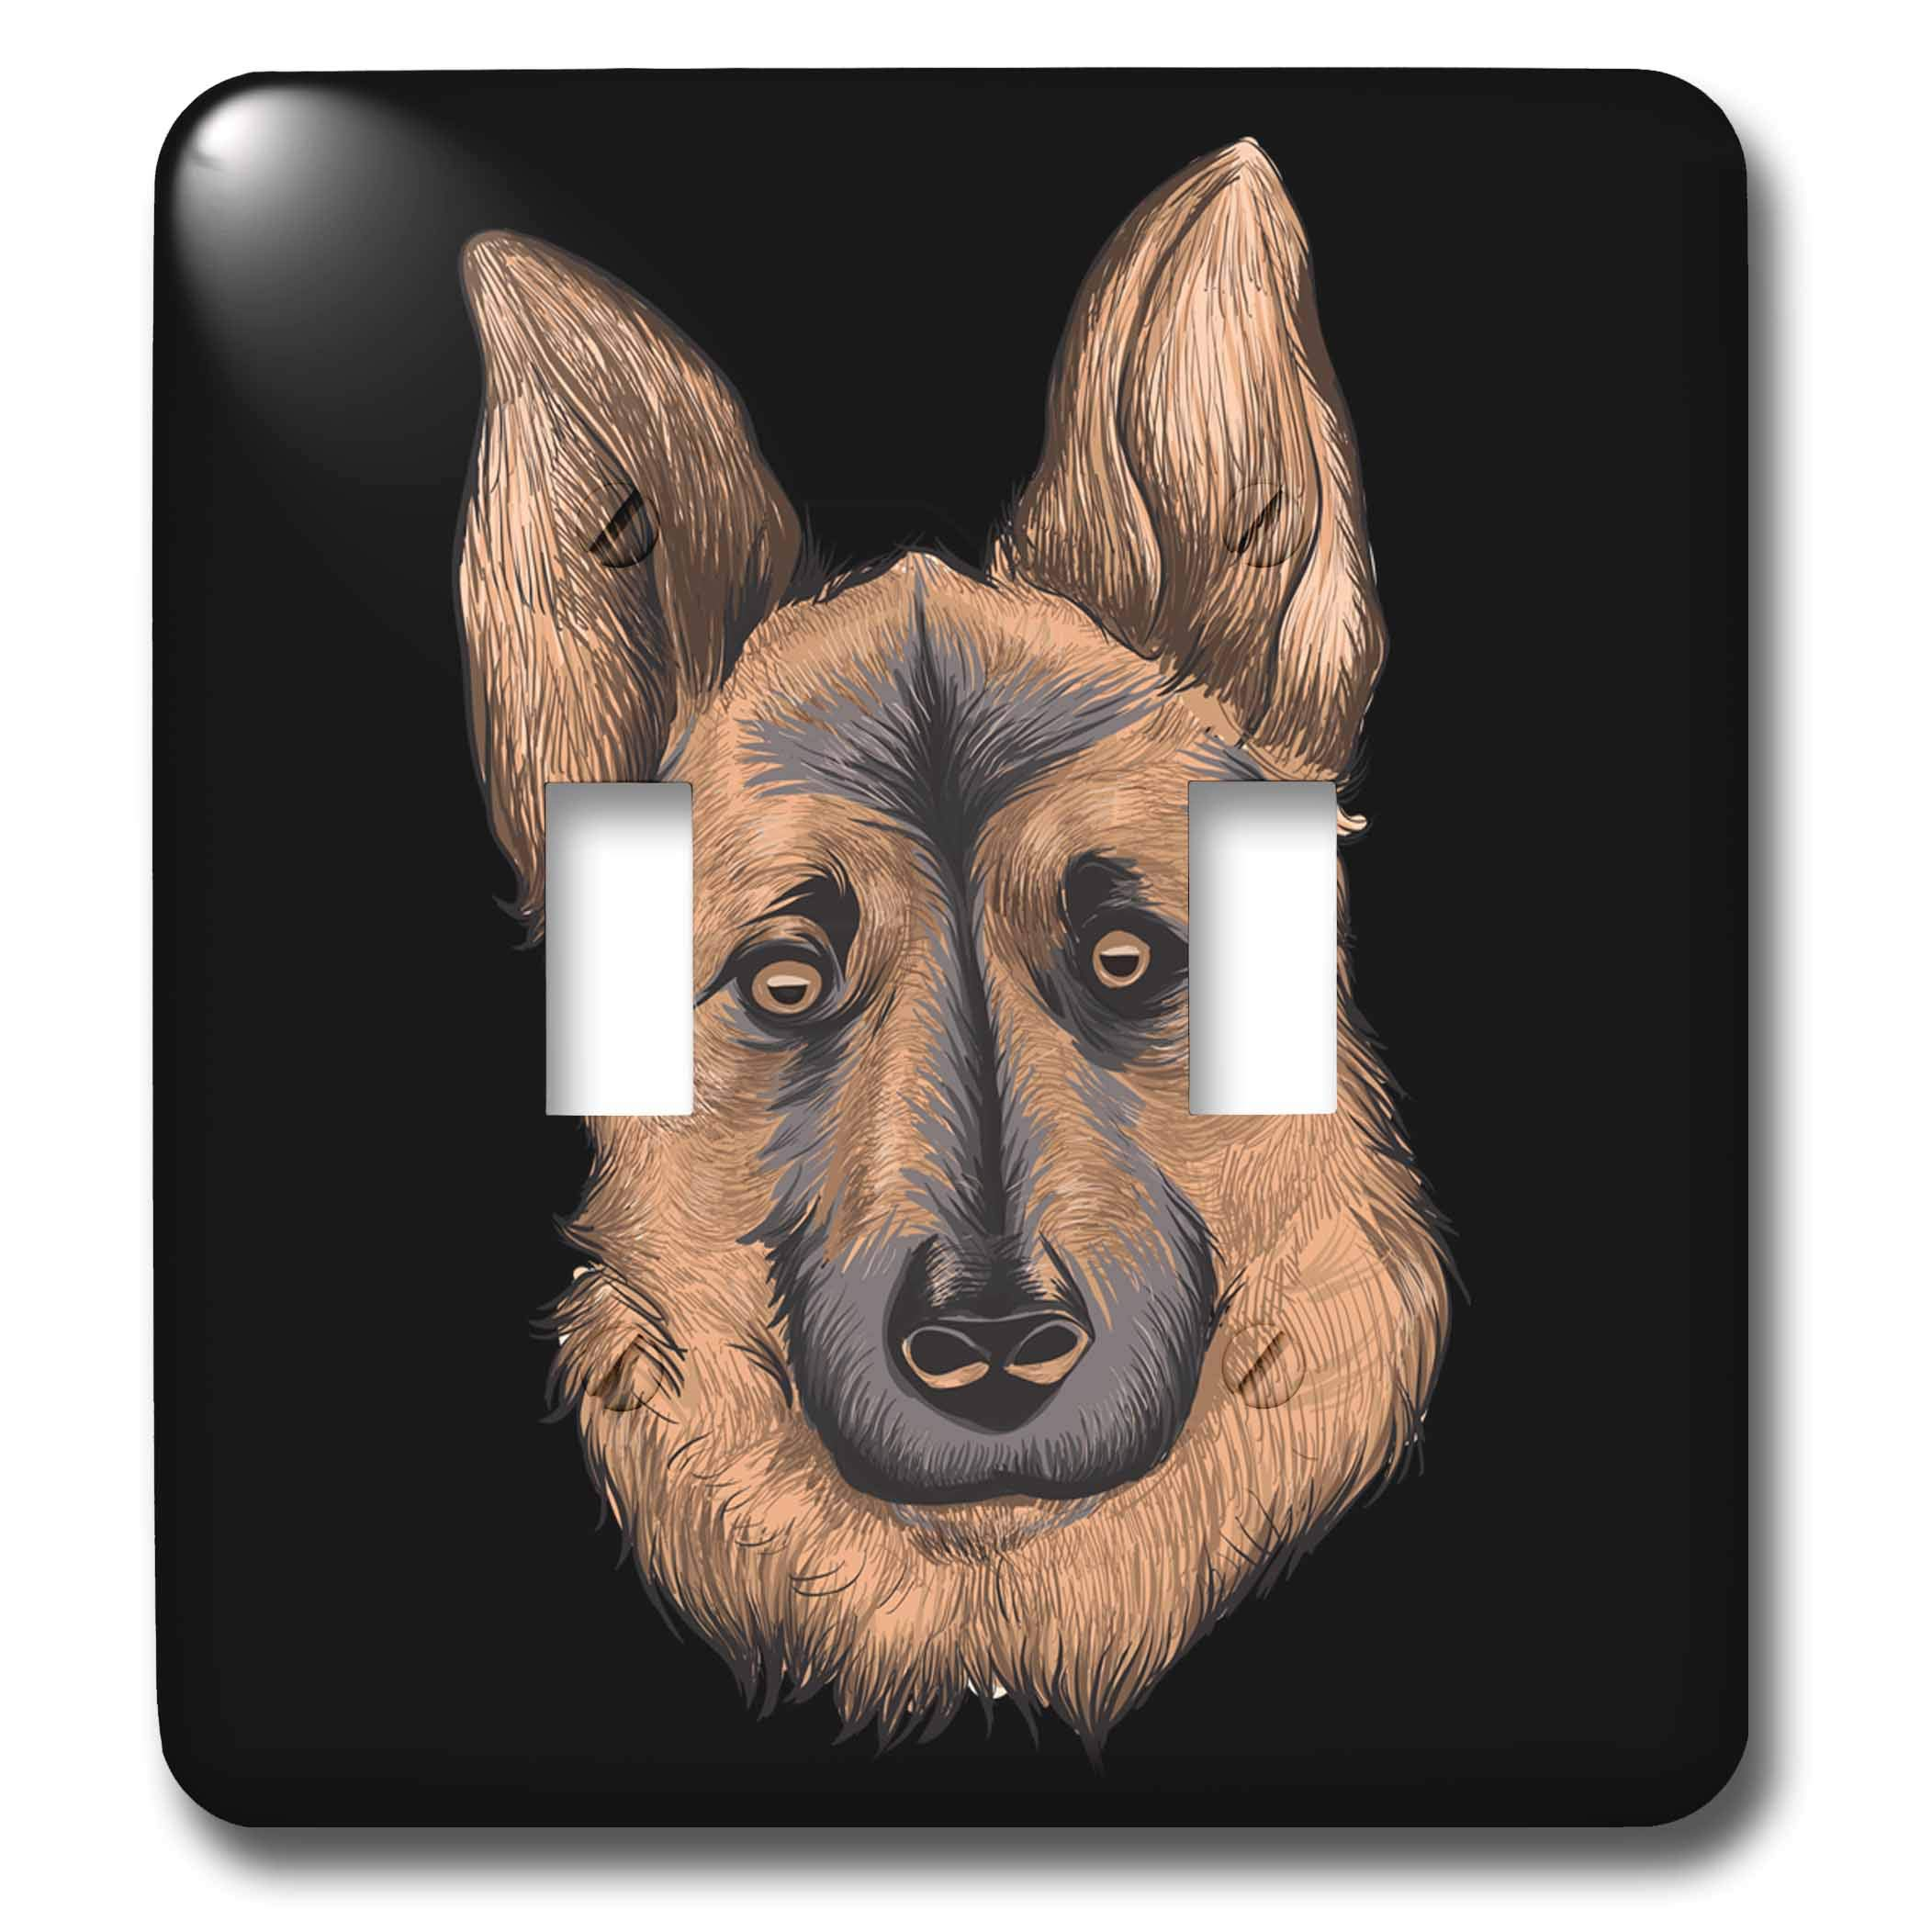 3dRose Sven Herkenrath - Animal - Portrait of a Gorgeous German Shepherd Dog on Black Background - Light Switch Covers - double toggle switch (lsp_290744_2)